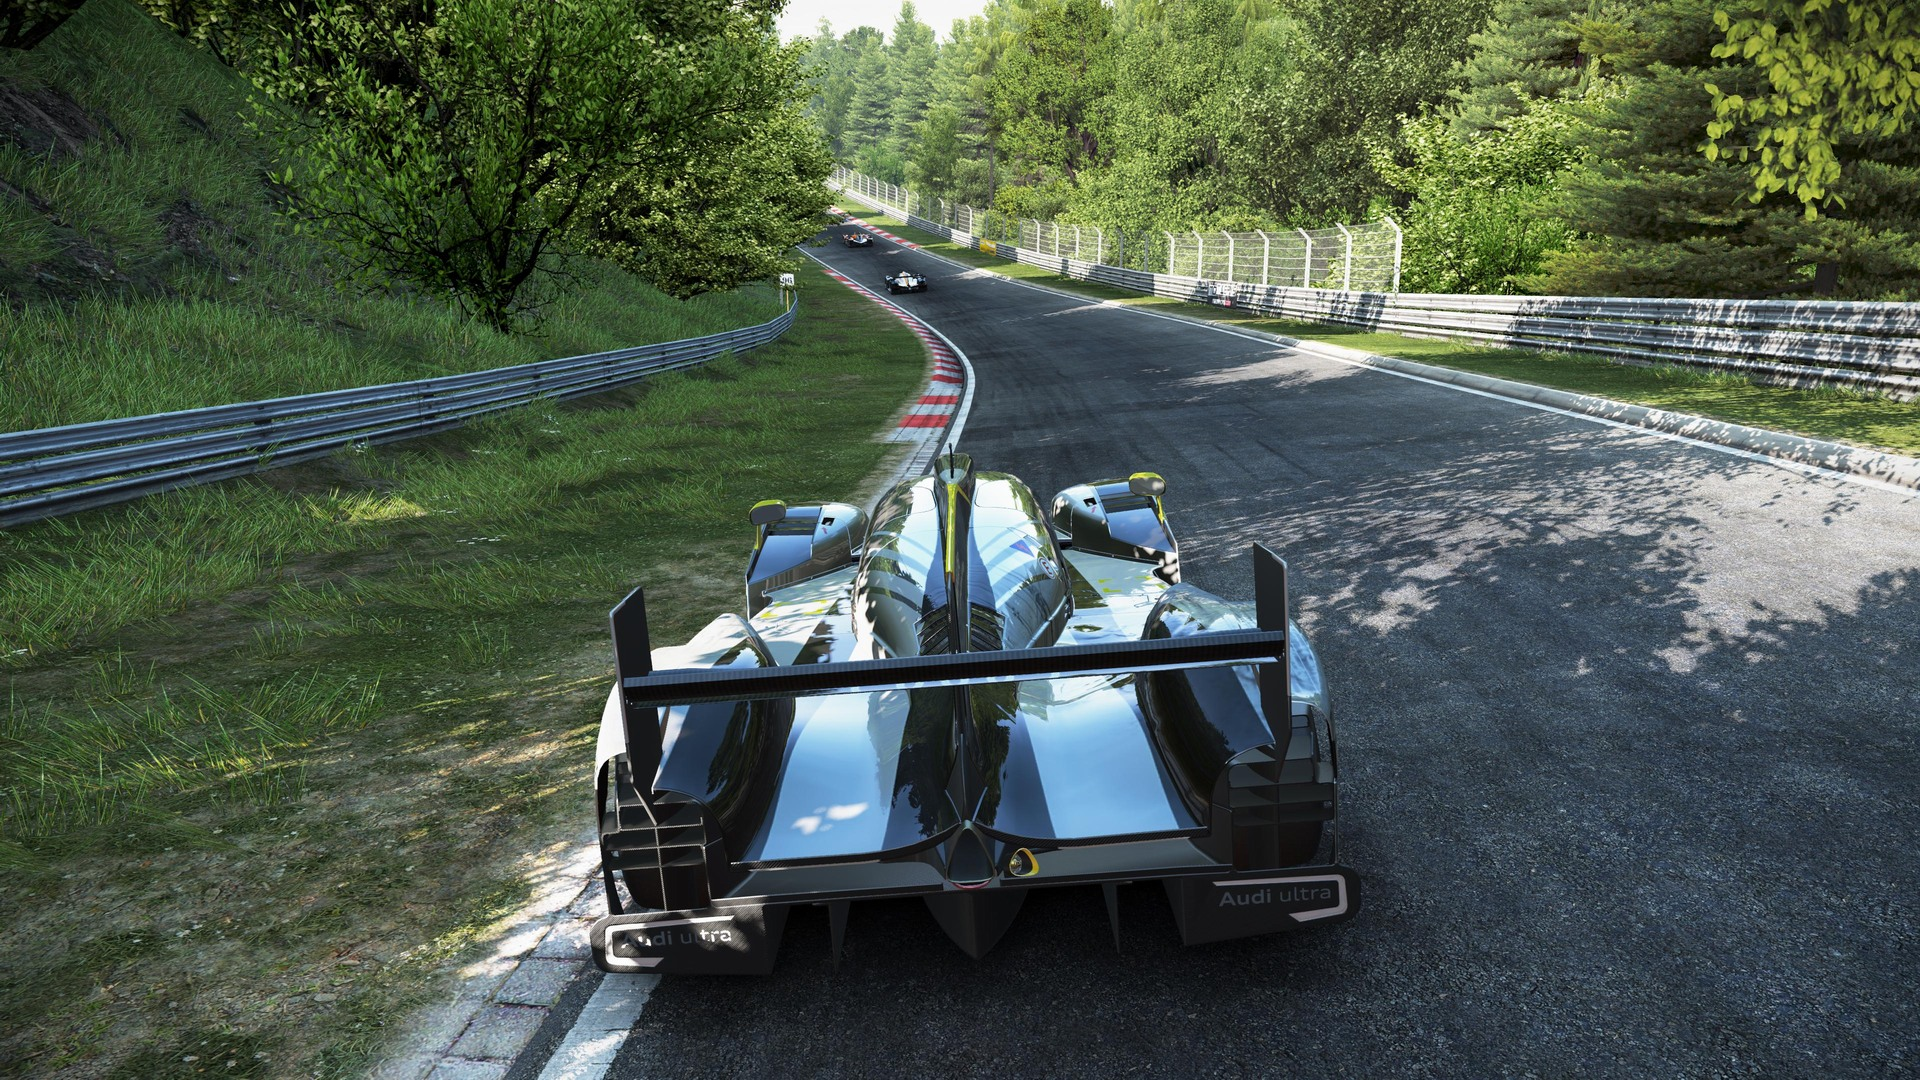 3440x1440 Car Wallpaper Project Cars Dev Dx12 Will Improve Performance By 30 40